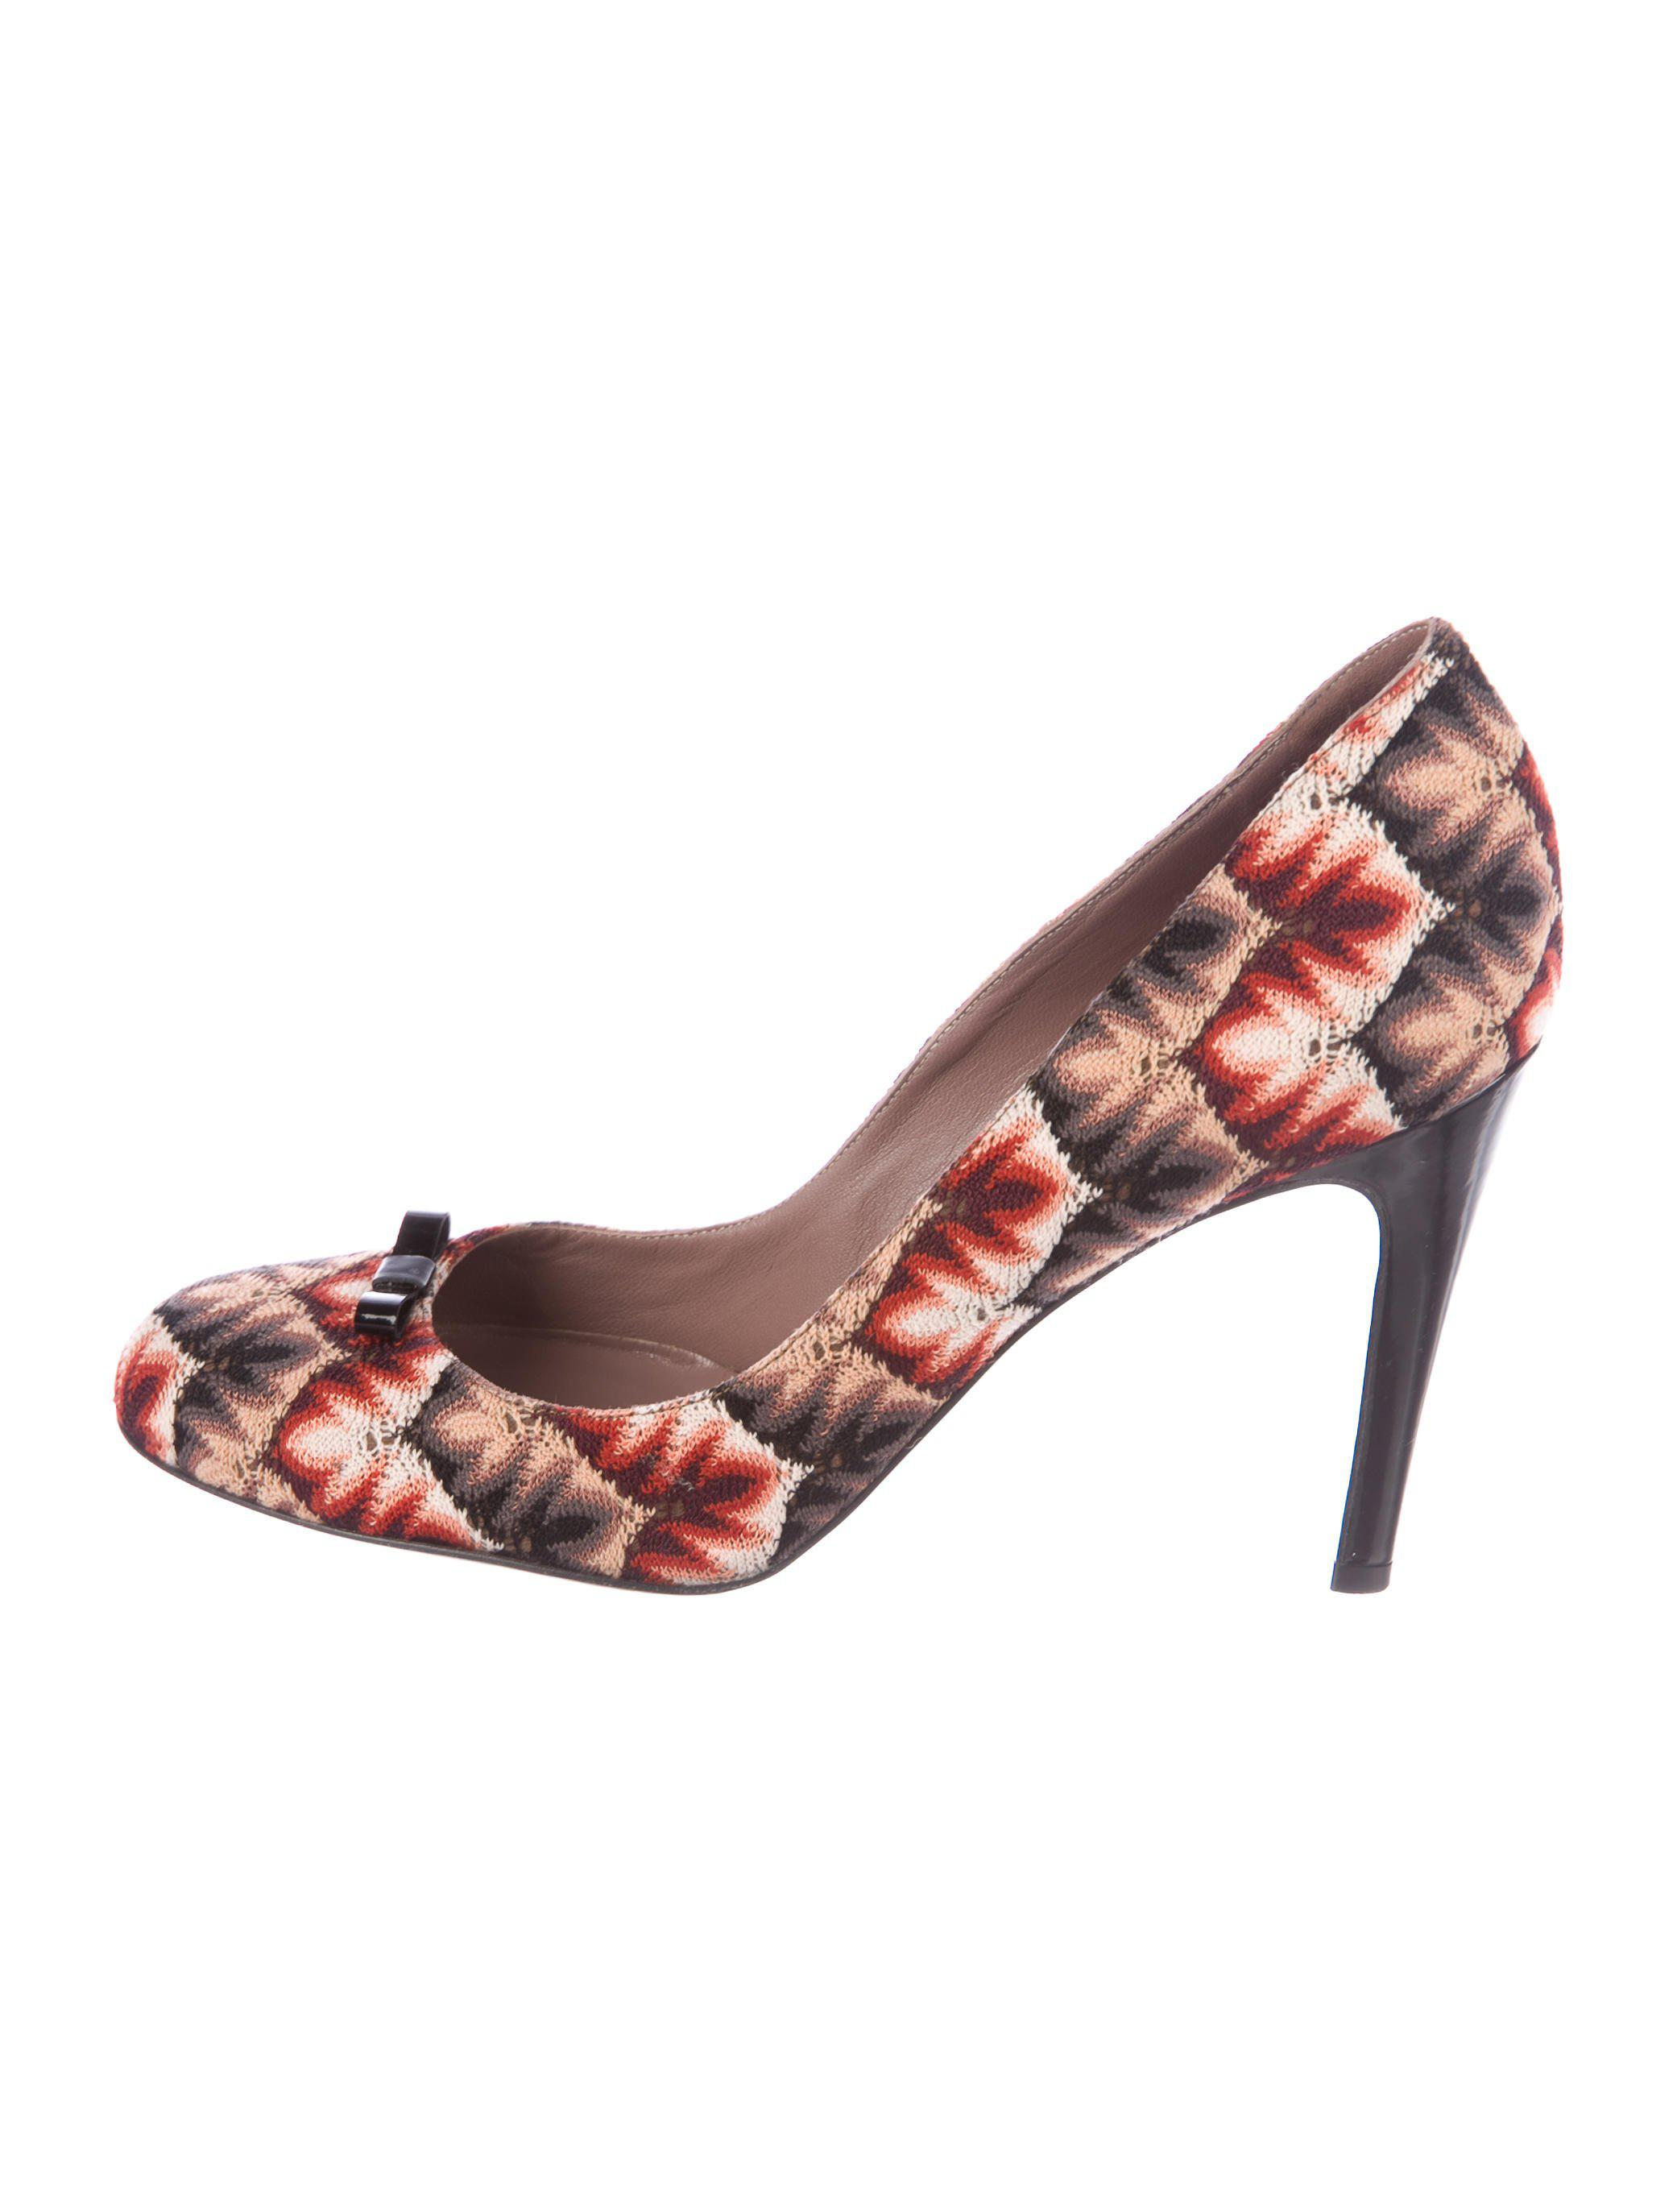 Missoni Knit Round-Toe Pumps free shipping best store to get excellent cheap price cheap low price ilTFee